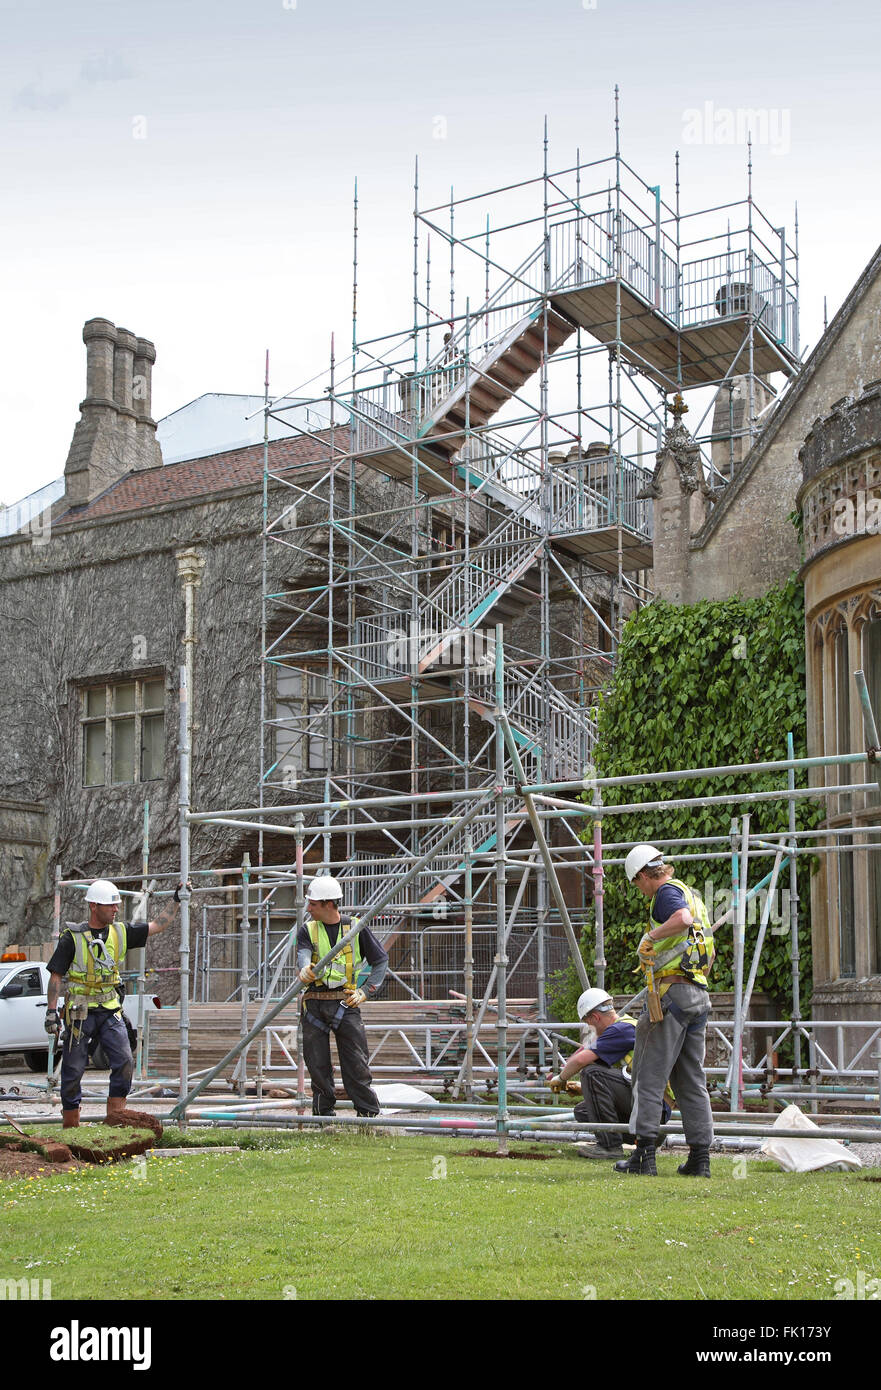 Scaffolders working at Tyntesfield House, a National Trust owned stately home near Bristol - Stock Image